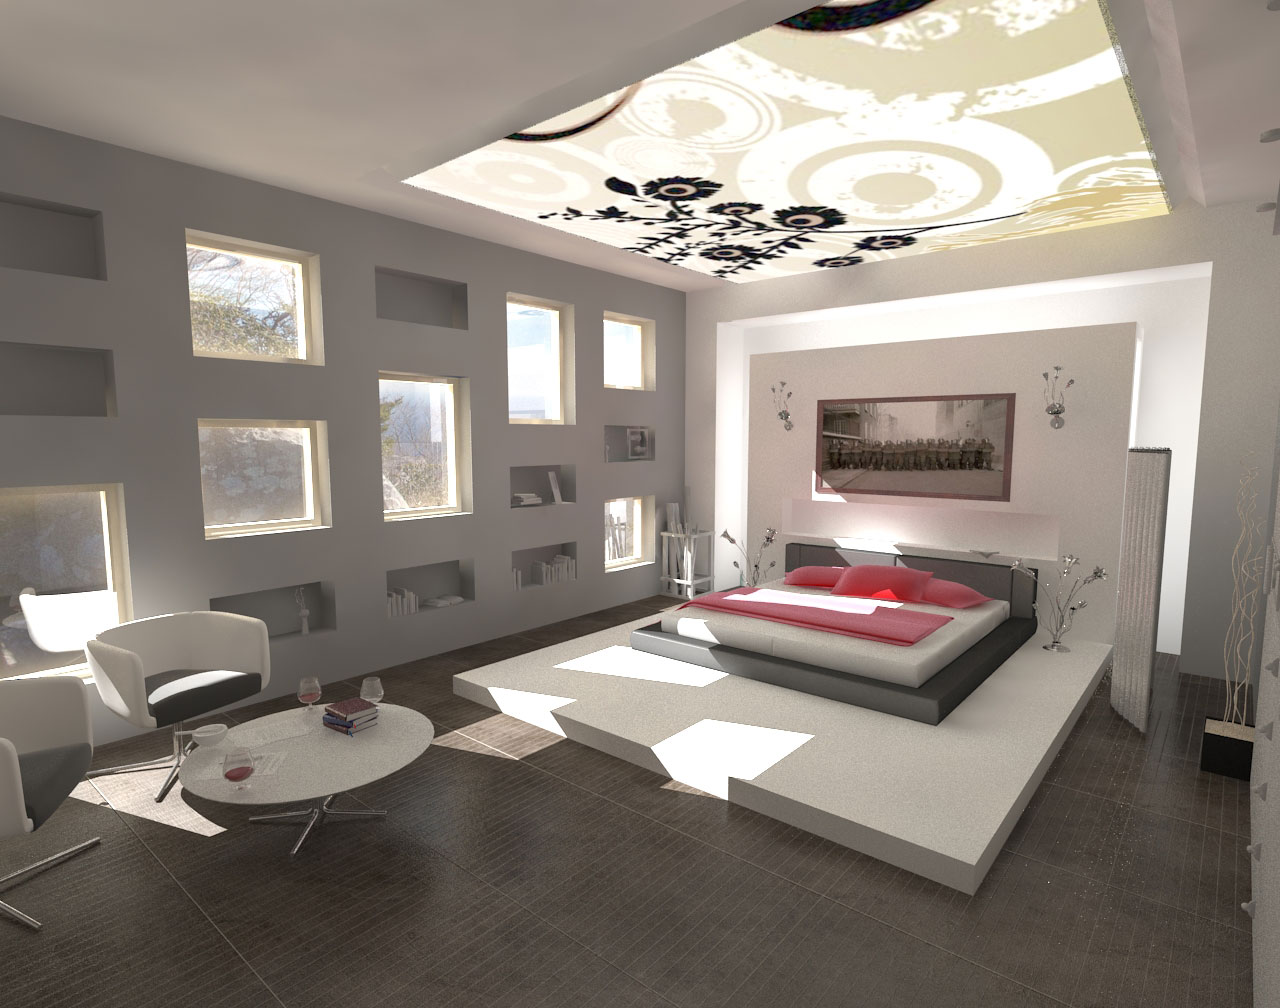 Decorations minimalist design modern bedroom interior for Bedroom room decor ideas